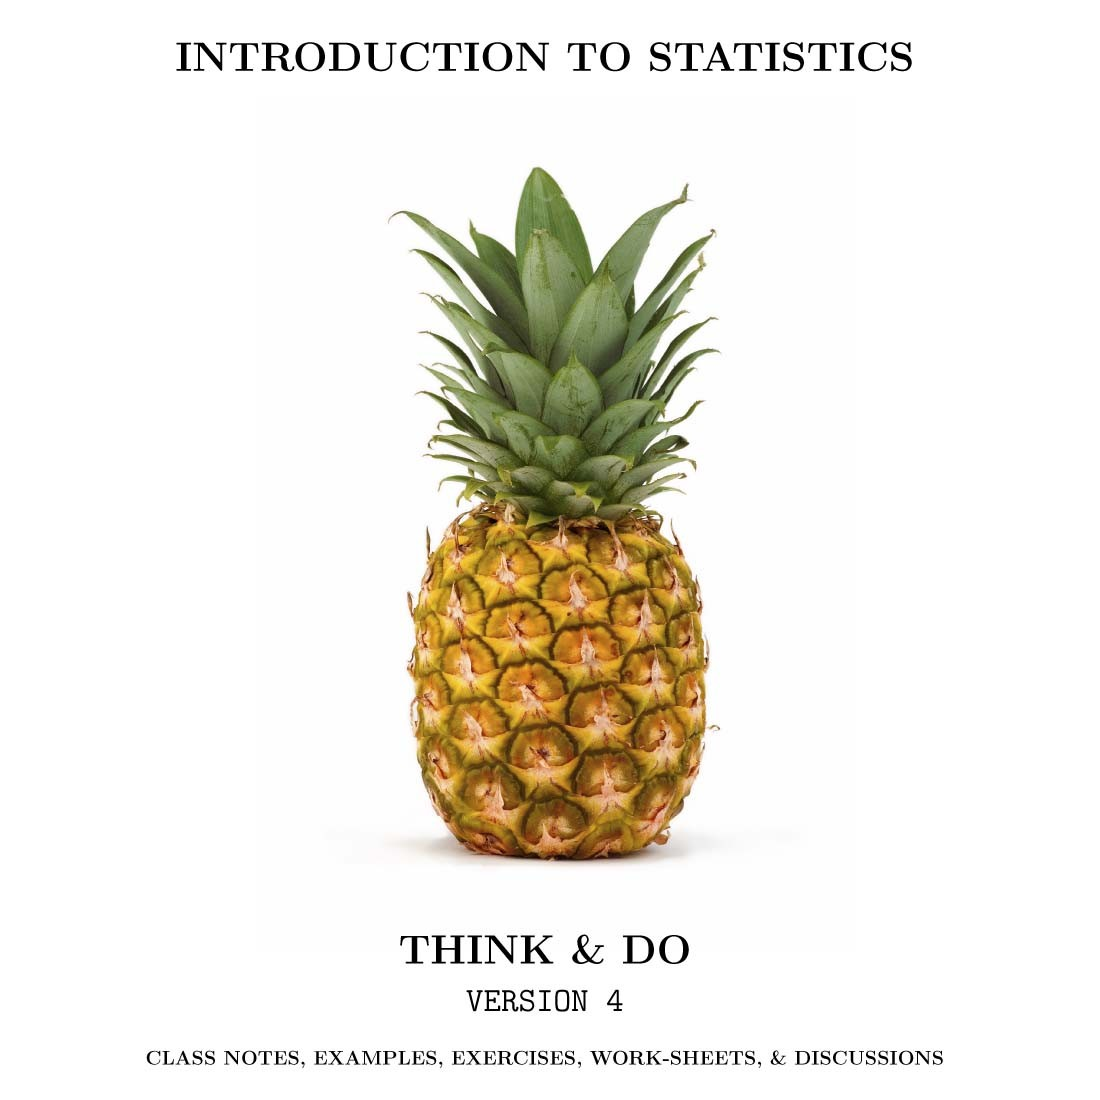 Introduction to Statistics: Think & Do; V4